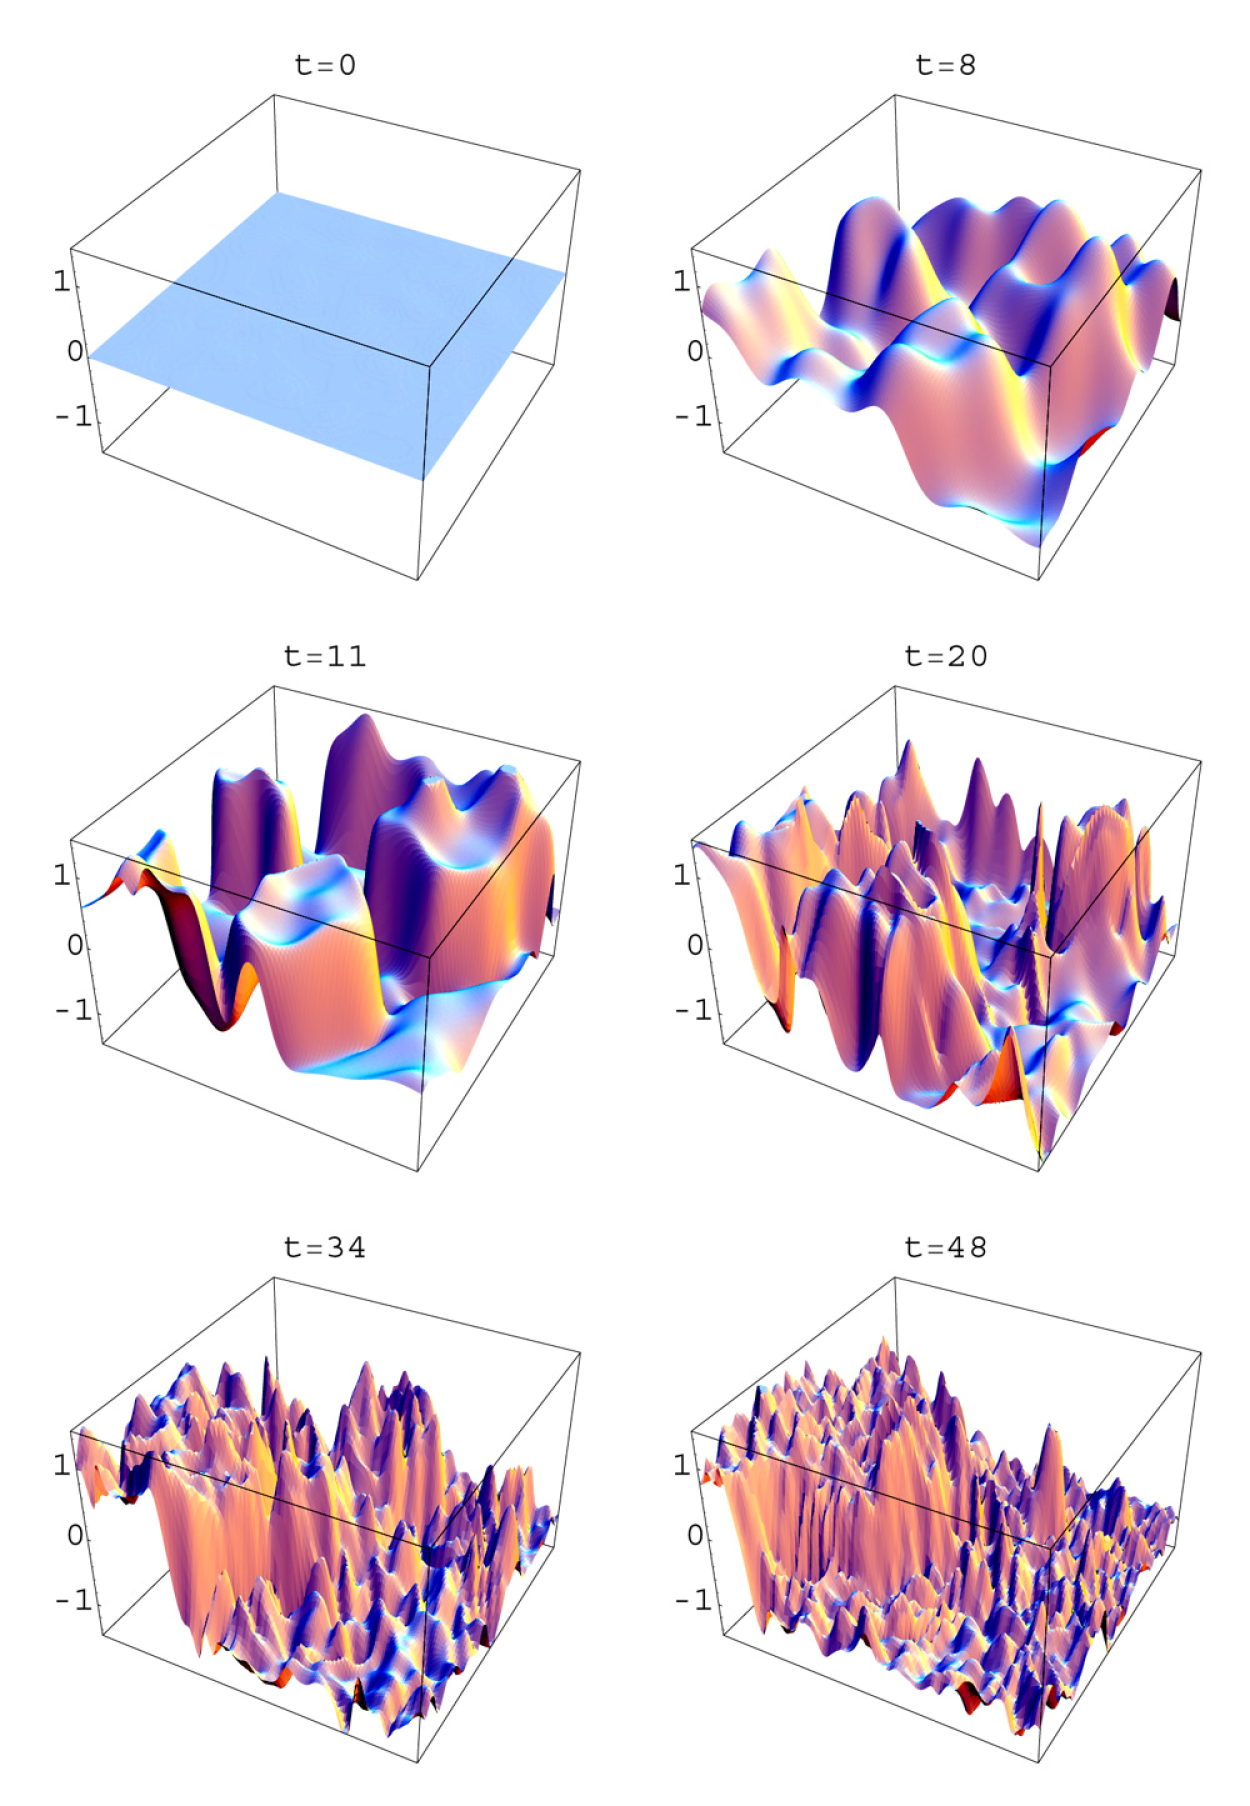 Tachyonic growth of quantum fluctuations and the early stages of domain formation in the simplest theory of spontaneous symmetry breaking with